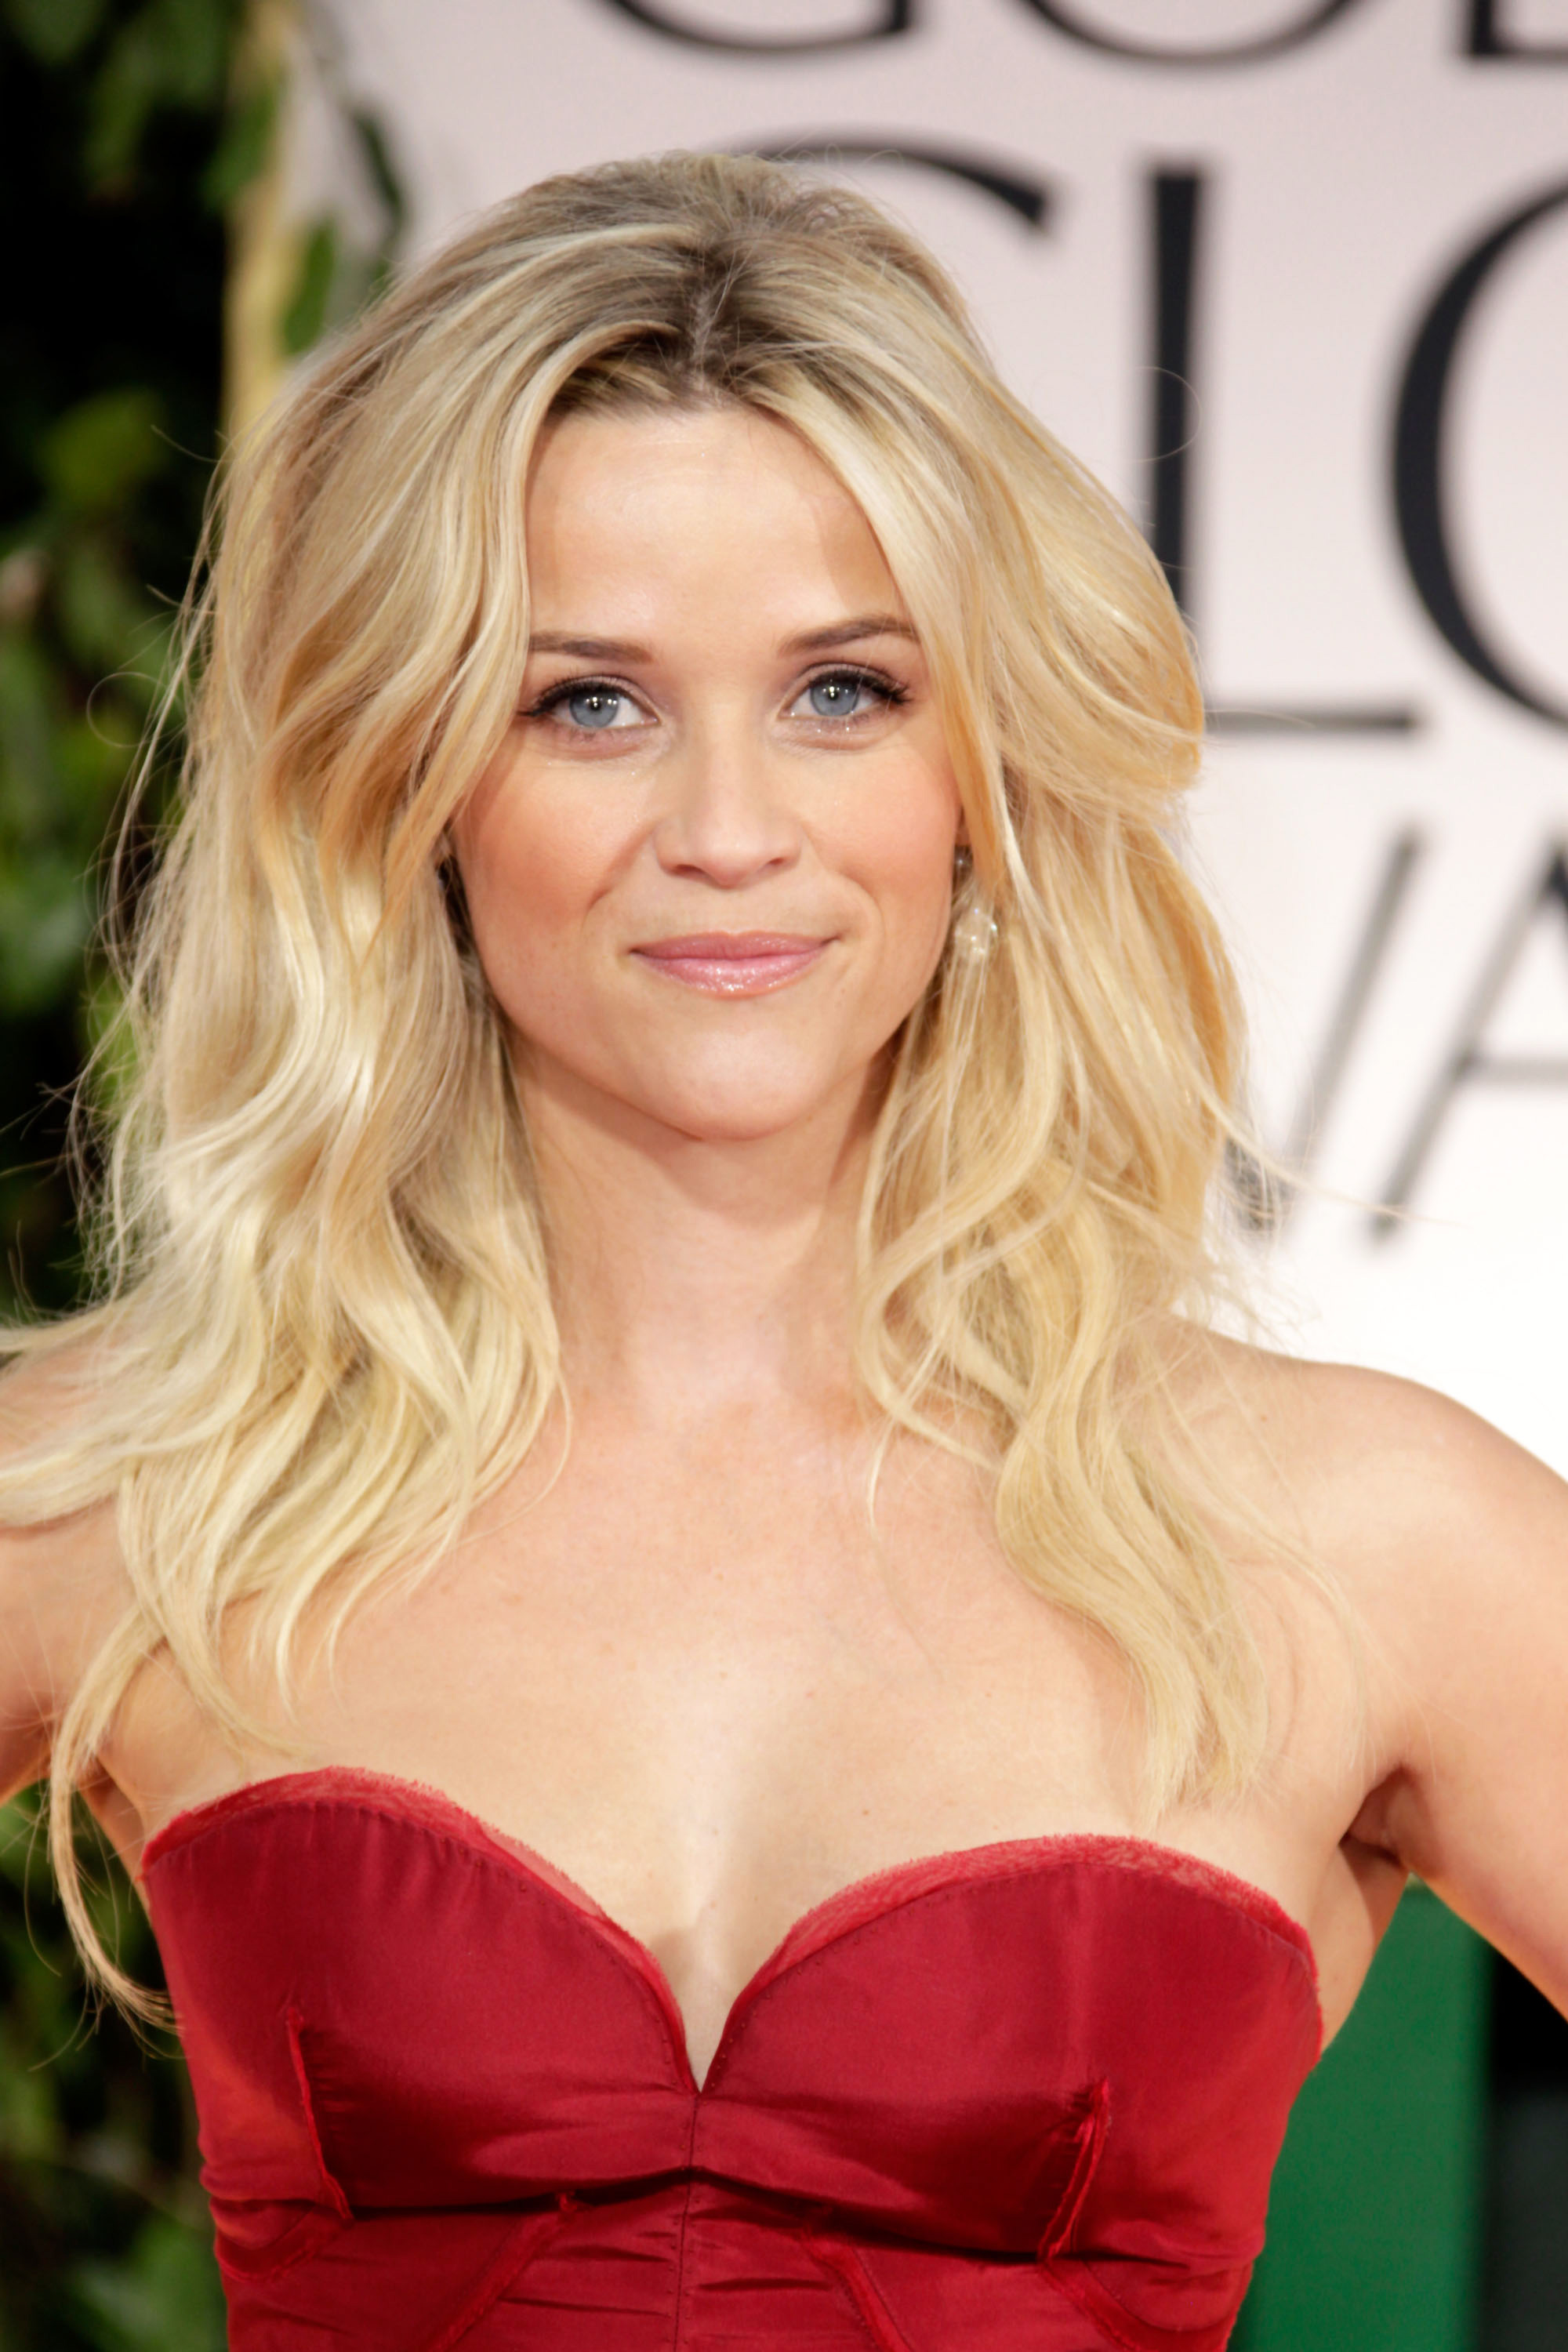 Reese Witherspoon celebrated her birthday last week, and ... Reese Witherspoon